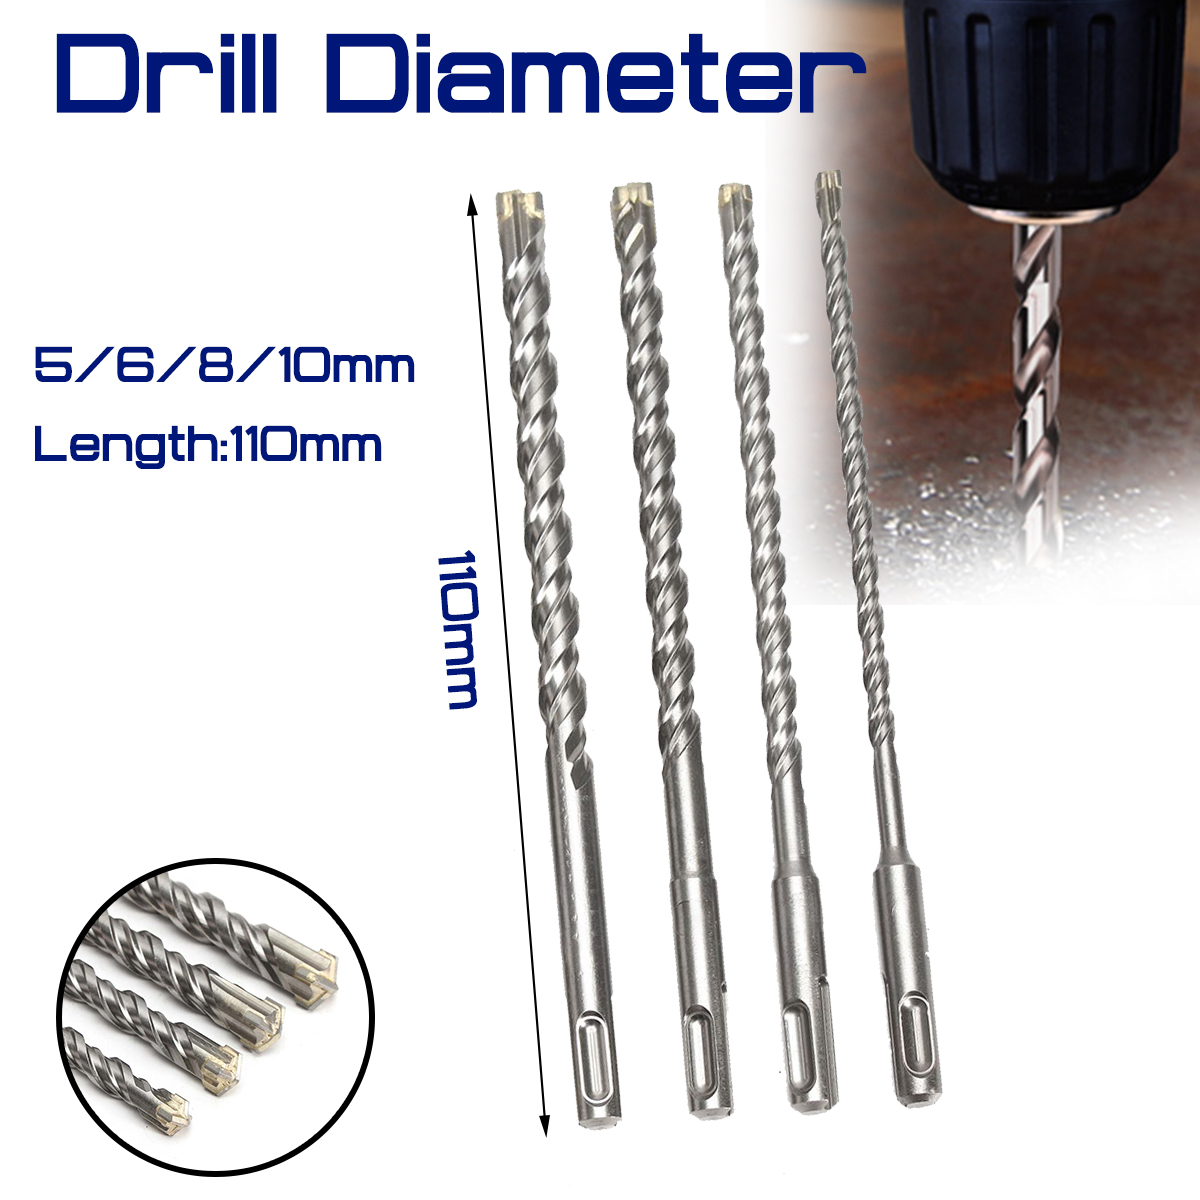 For Electric Dril 11cm Concrete Drill Bit Double SDS Plus Slot Masonry Hammer Head Tool 5/6/8/10mm High Speed White Steel Wrench